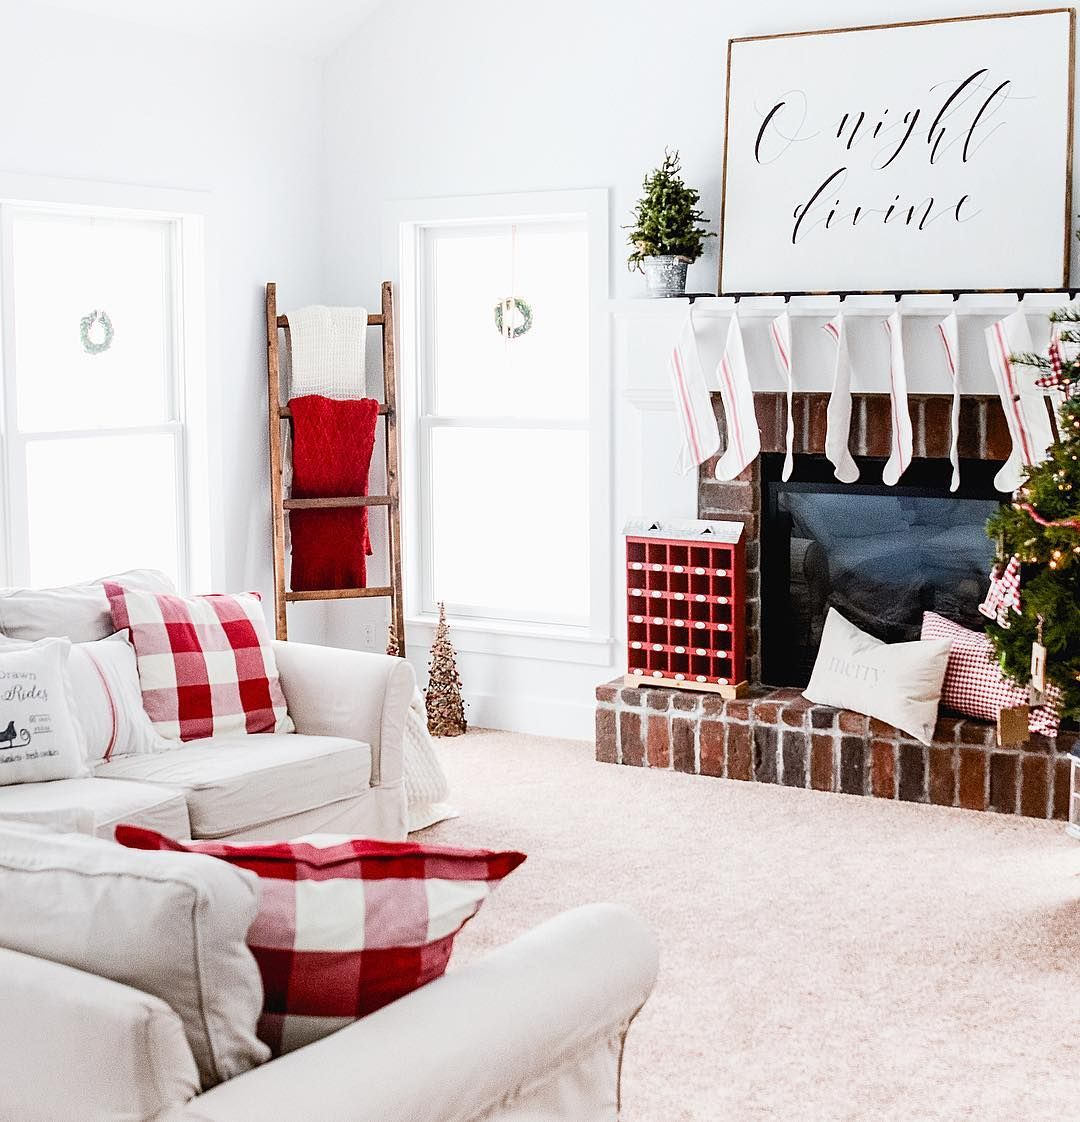 Modern Farmhouse Christmas Living Room @oldsaltfarm